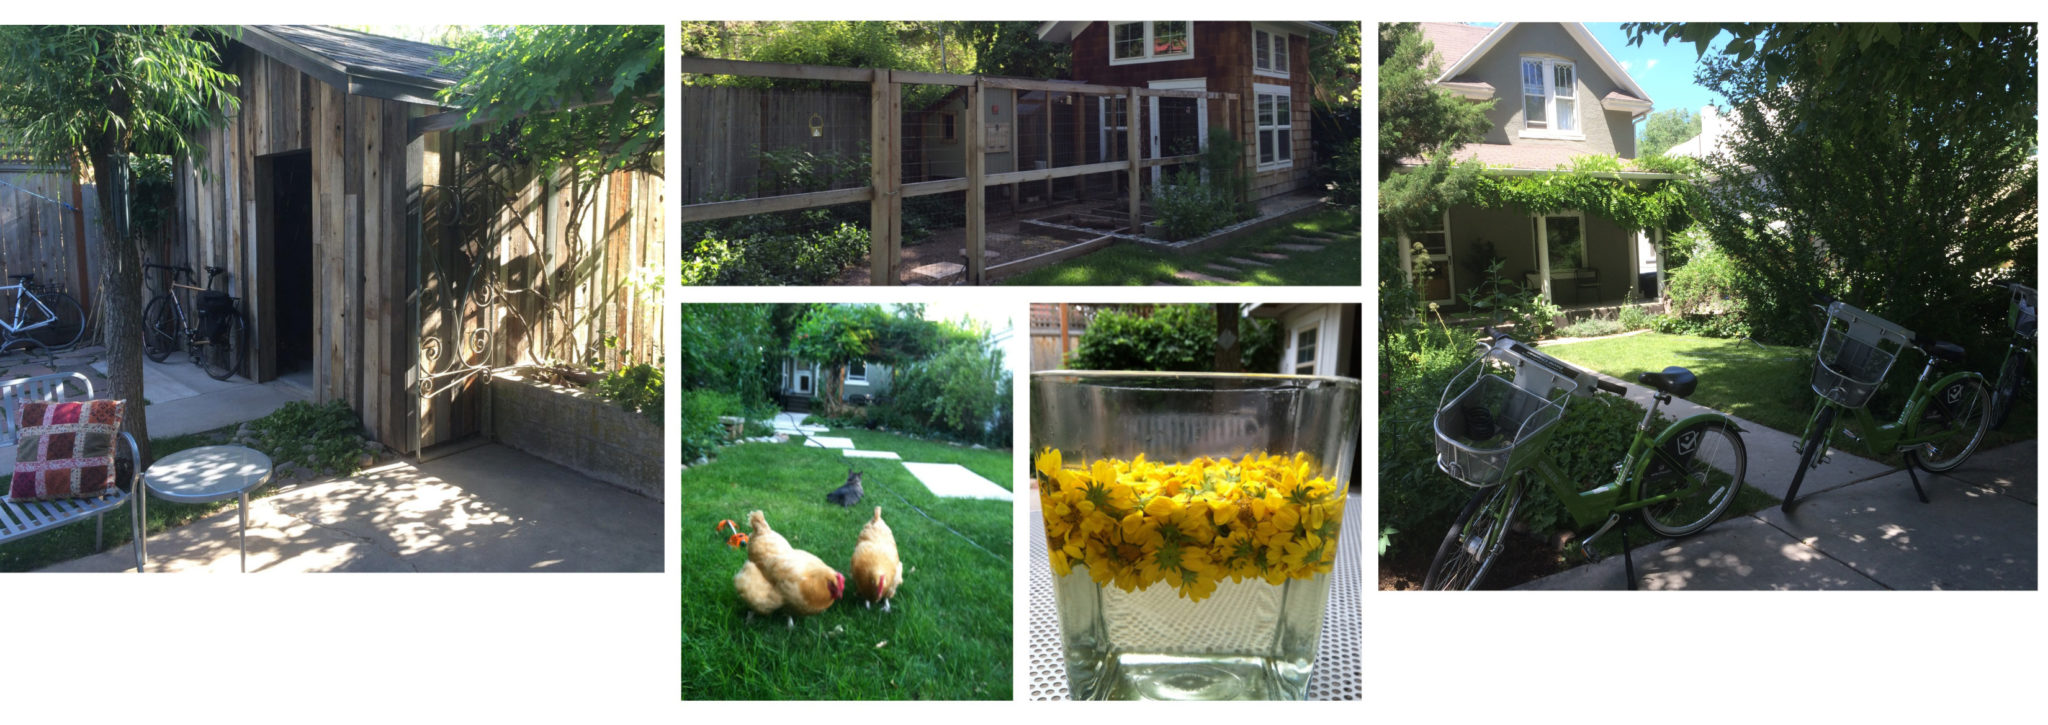 Growing a home,a garden,a  family,a love of biking and chickens in our community.